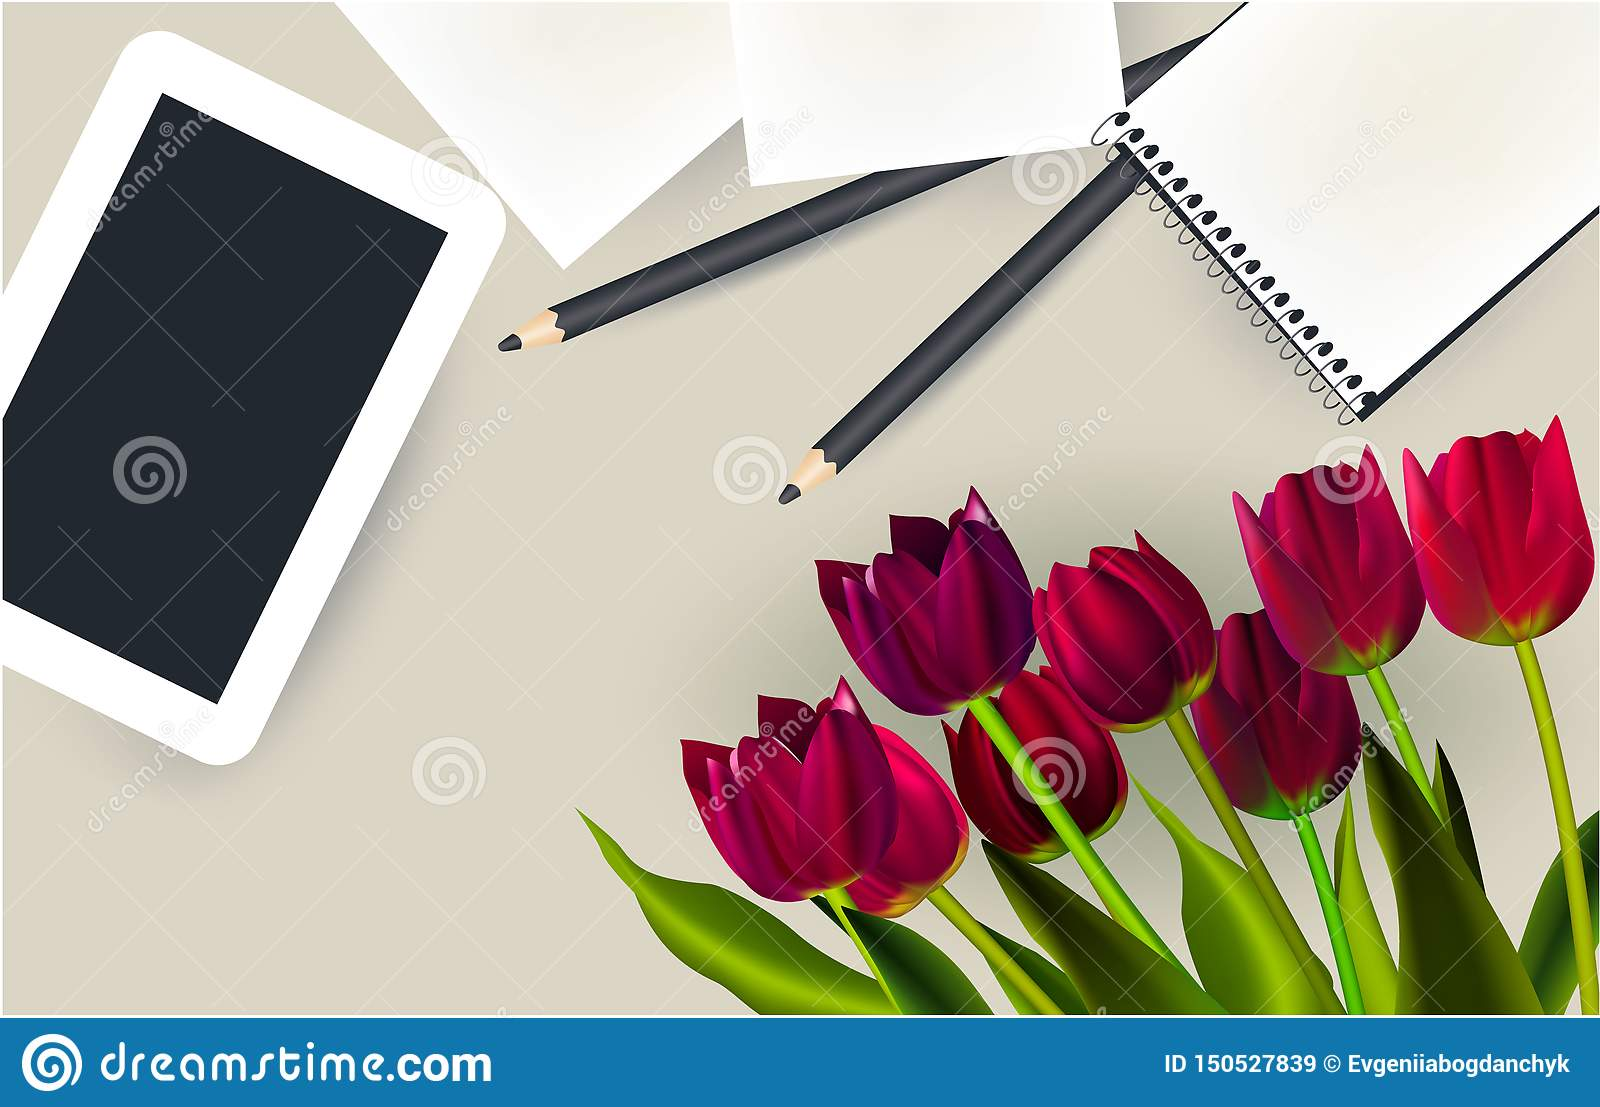 Tablet, pencil, tulips, top view table work